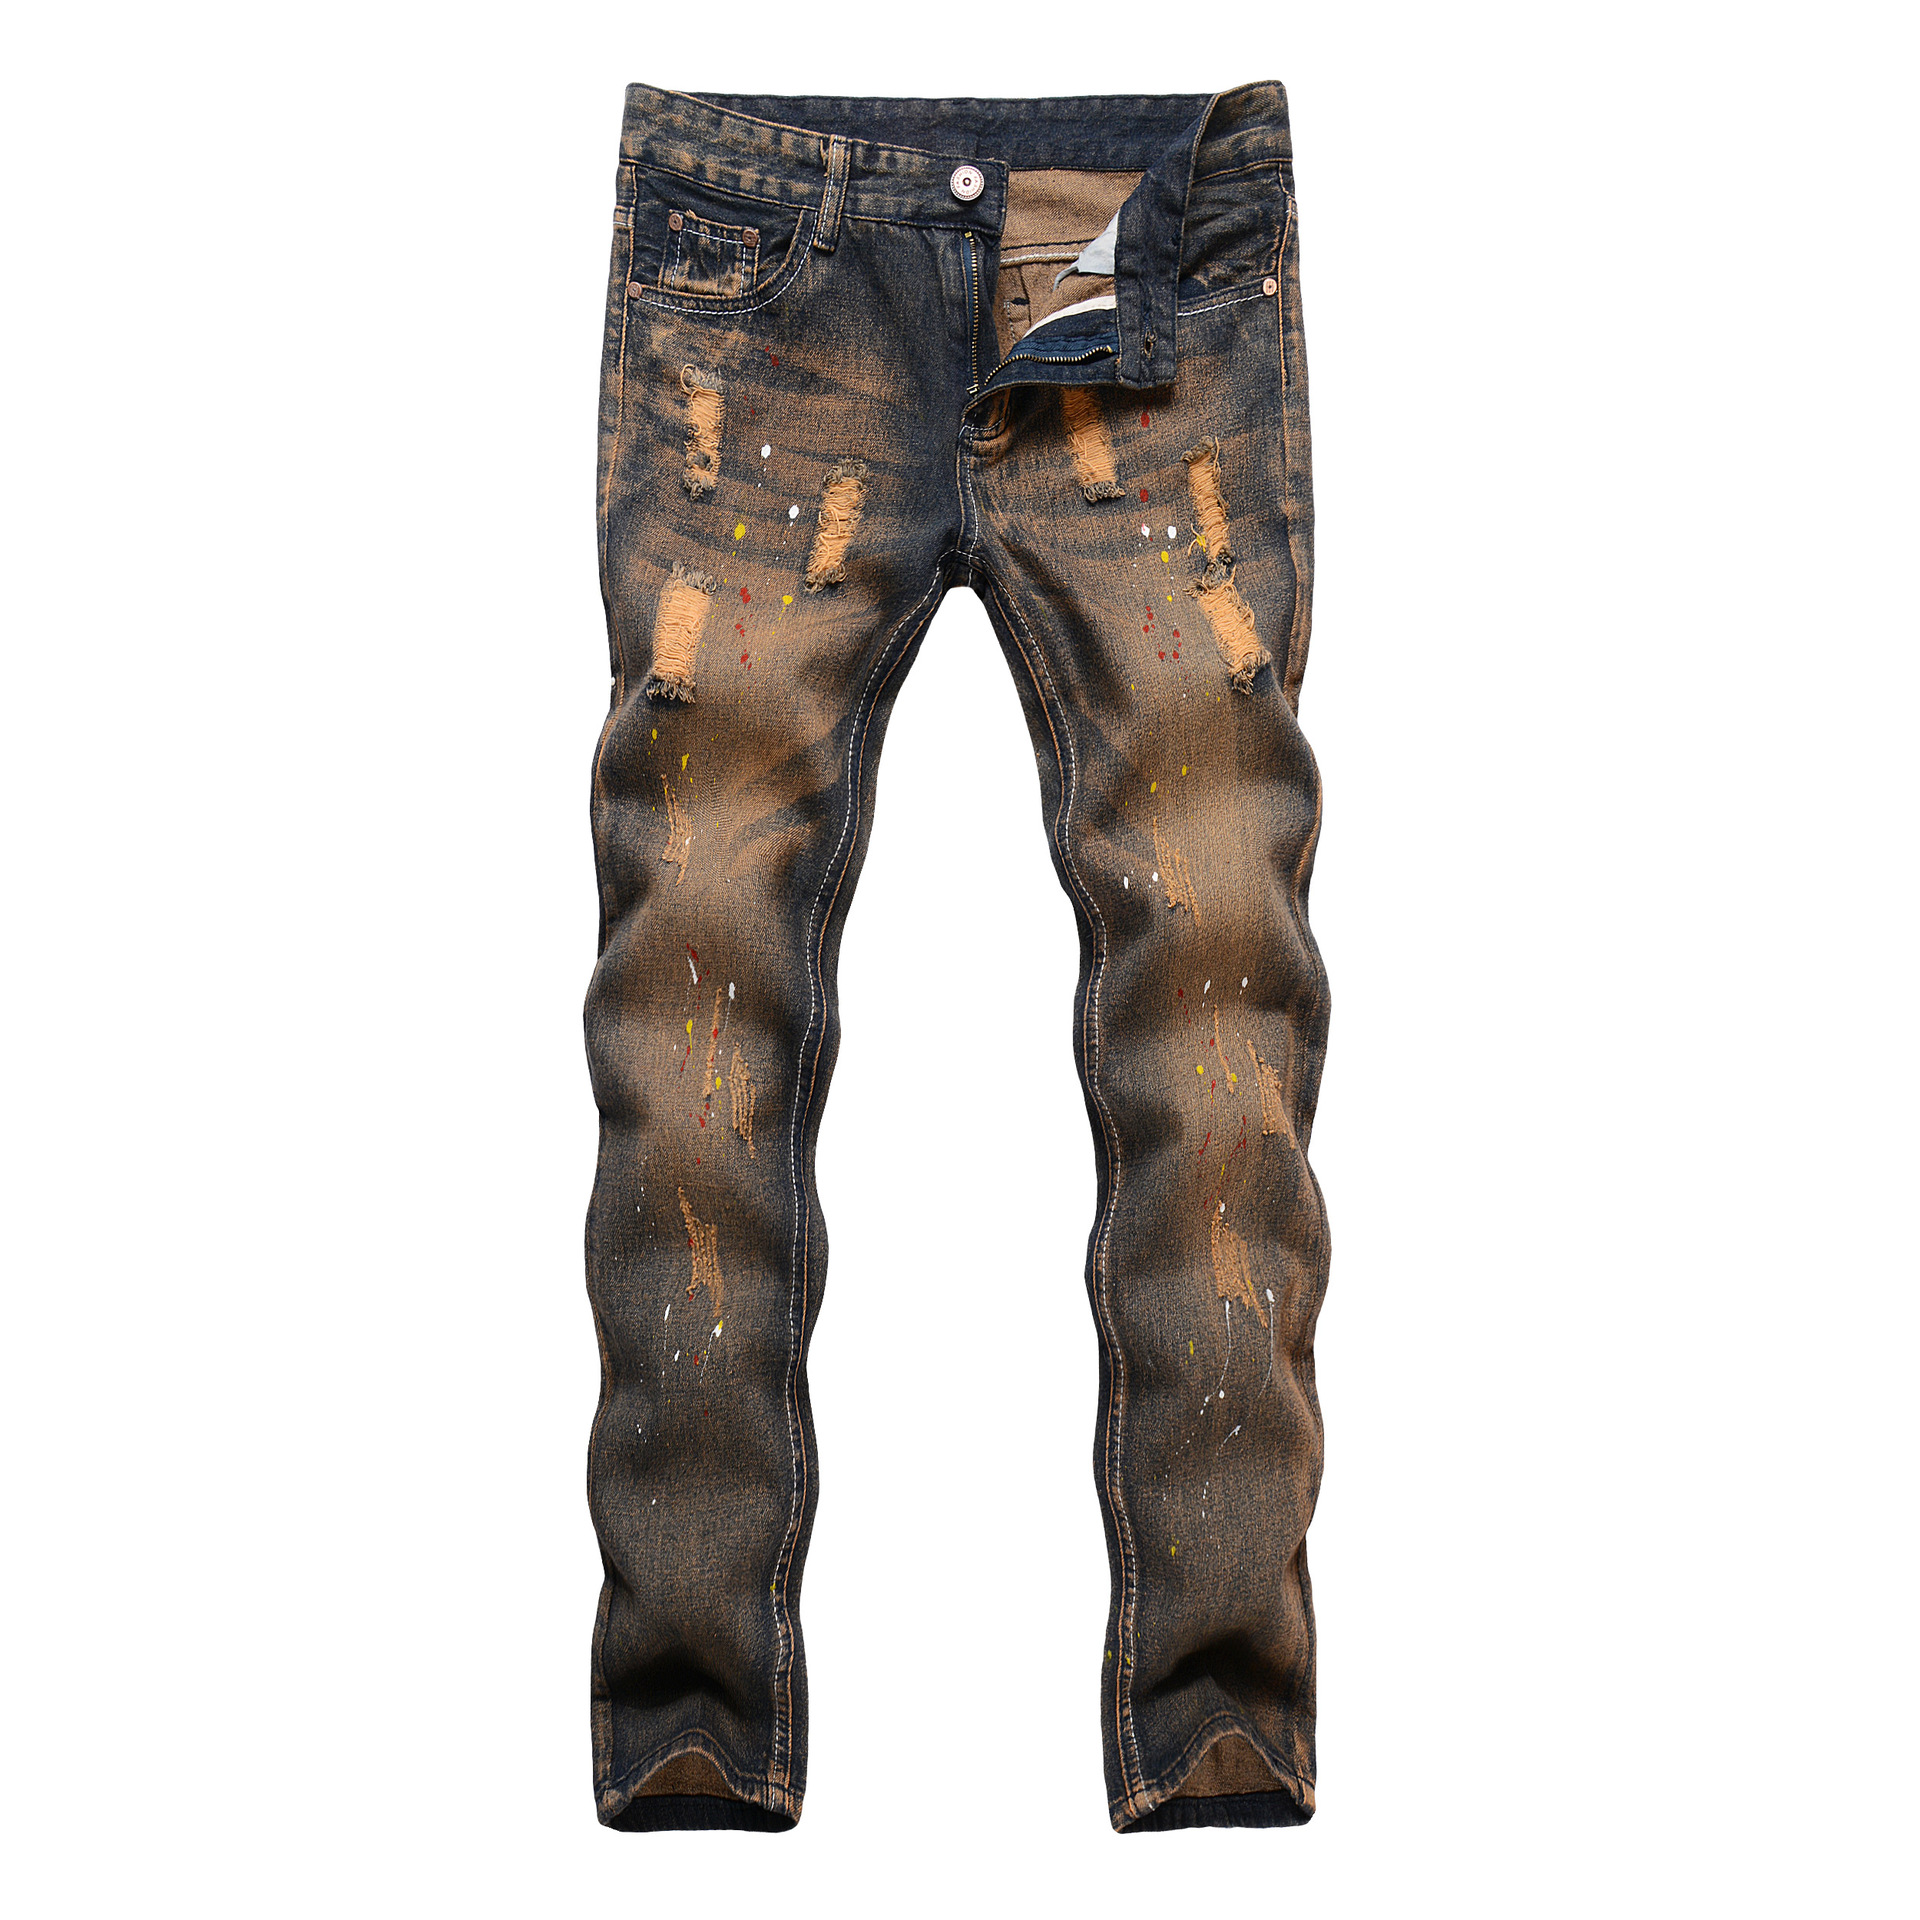 2017 New Style With Holes Jeans Men Slim Fit Trousers Men's Casual Pants Men's Trend Skinny Pants